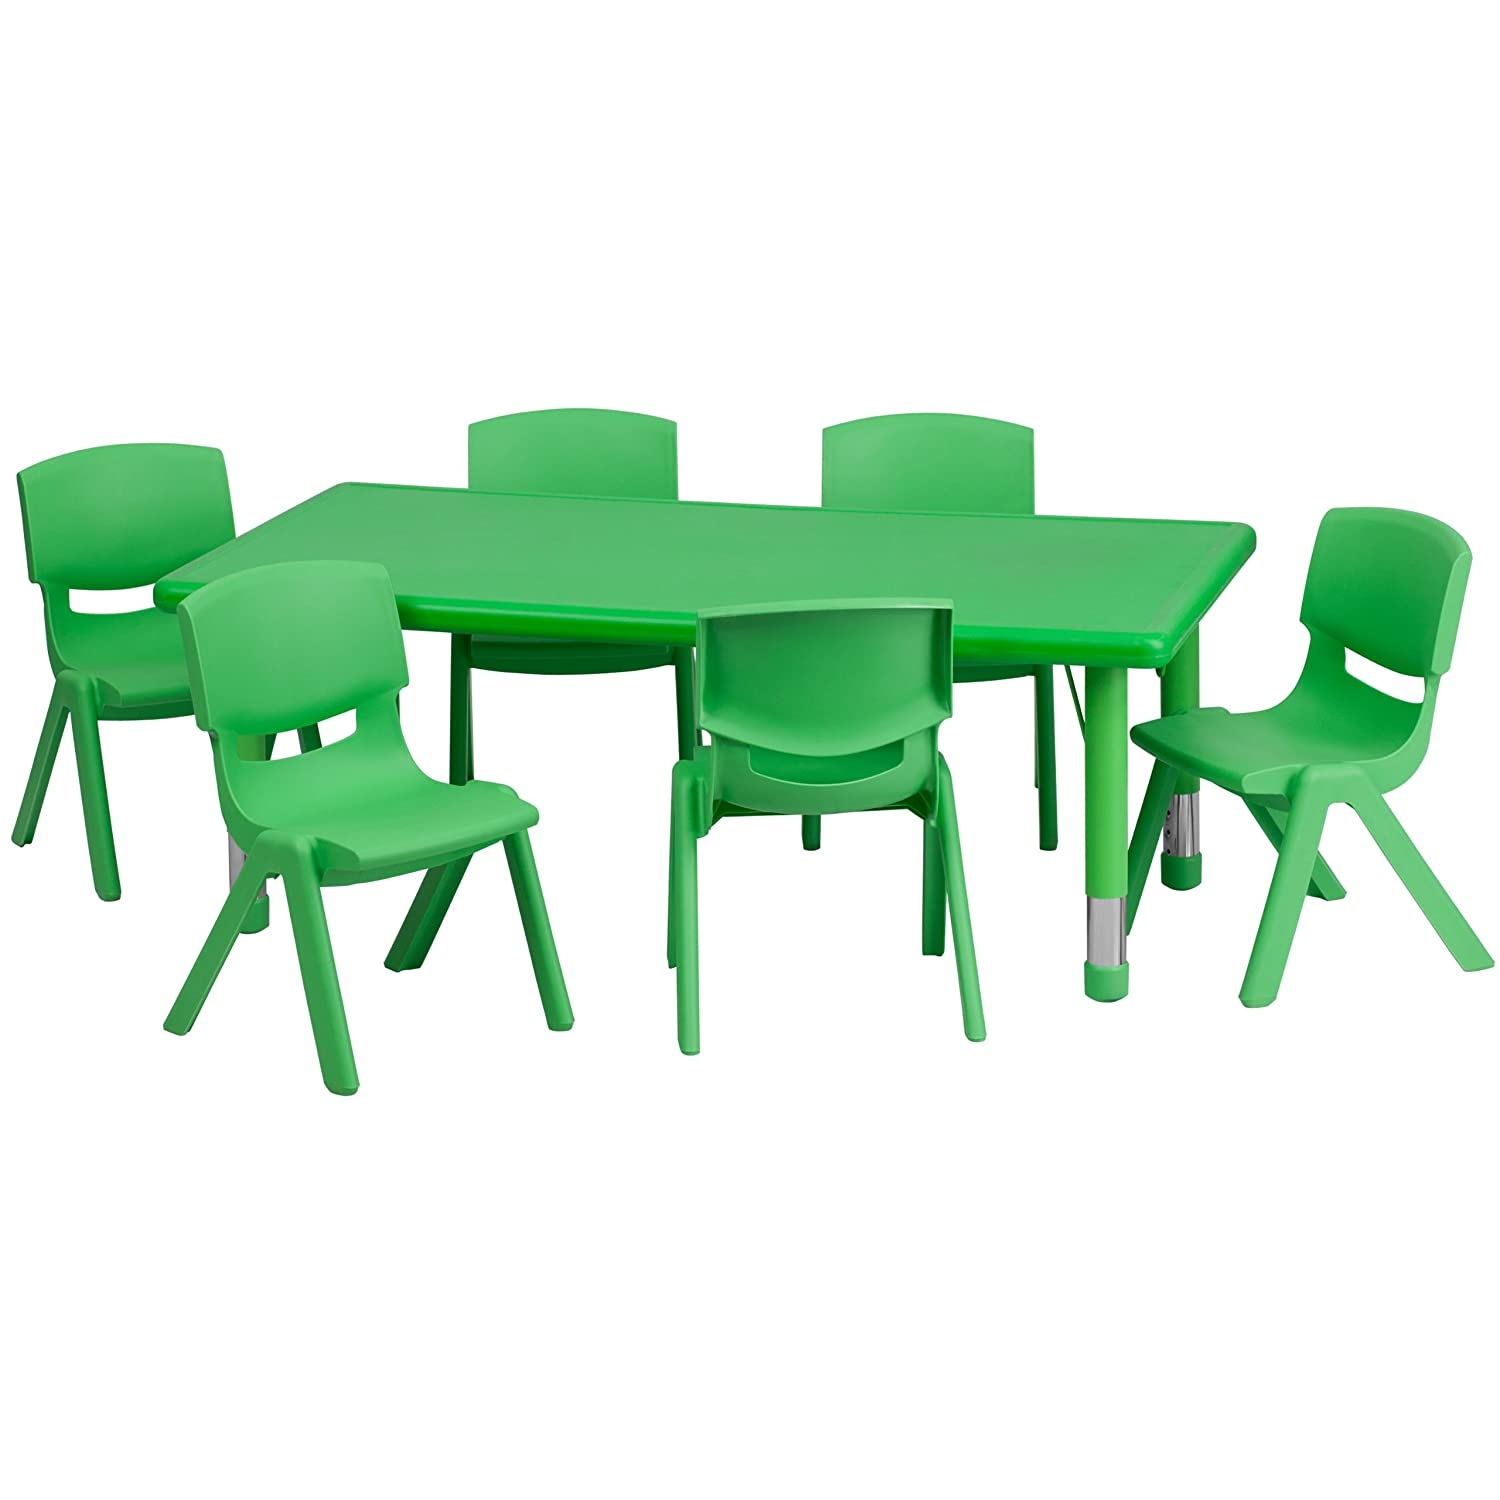 Amazon.com Flash Furniture 24\u0027\u0027W x 48\u0027\u0027L Rectangular Green Plastic Height Adjustable Activity Table Set with 6 Chairs Kitchen \u0026 Dining  sc 1 st  Amazon.com & Amazon.com: Flash Furniture 24\u0027\u0027W x 48\u0027\u0027L Rectangular Green Plastic ...